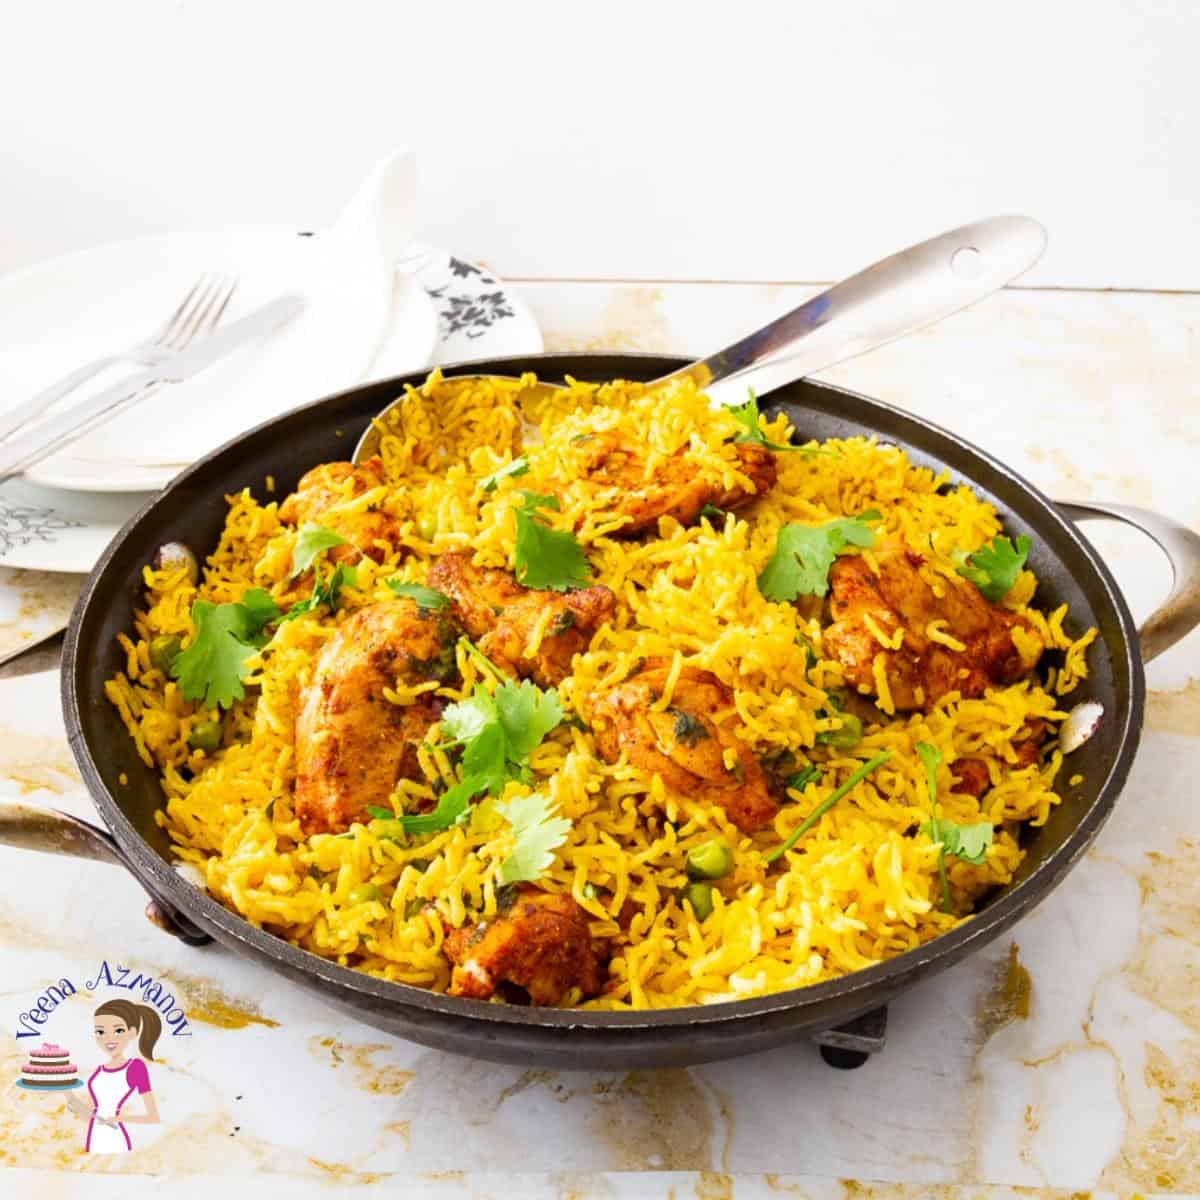 How to make a skillet rice with Turmeric, chicken and peas